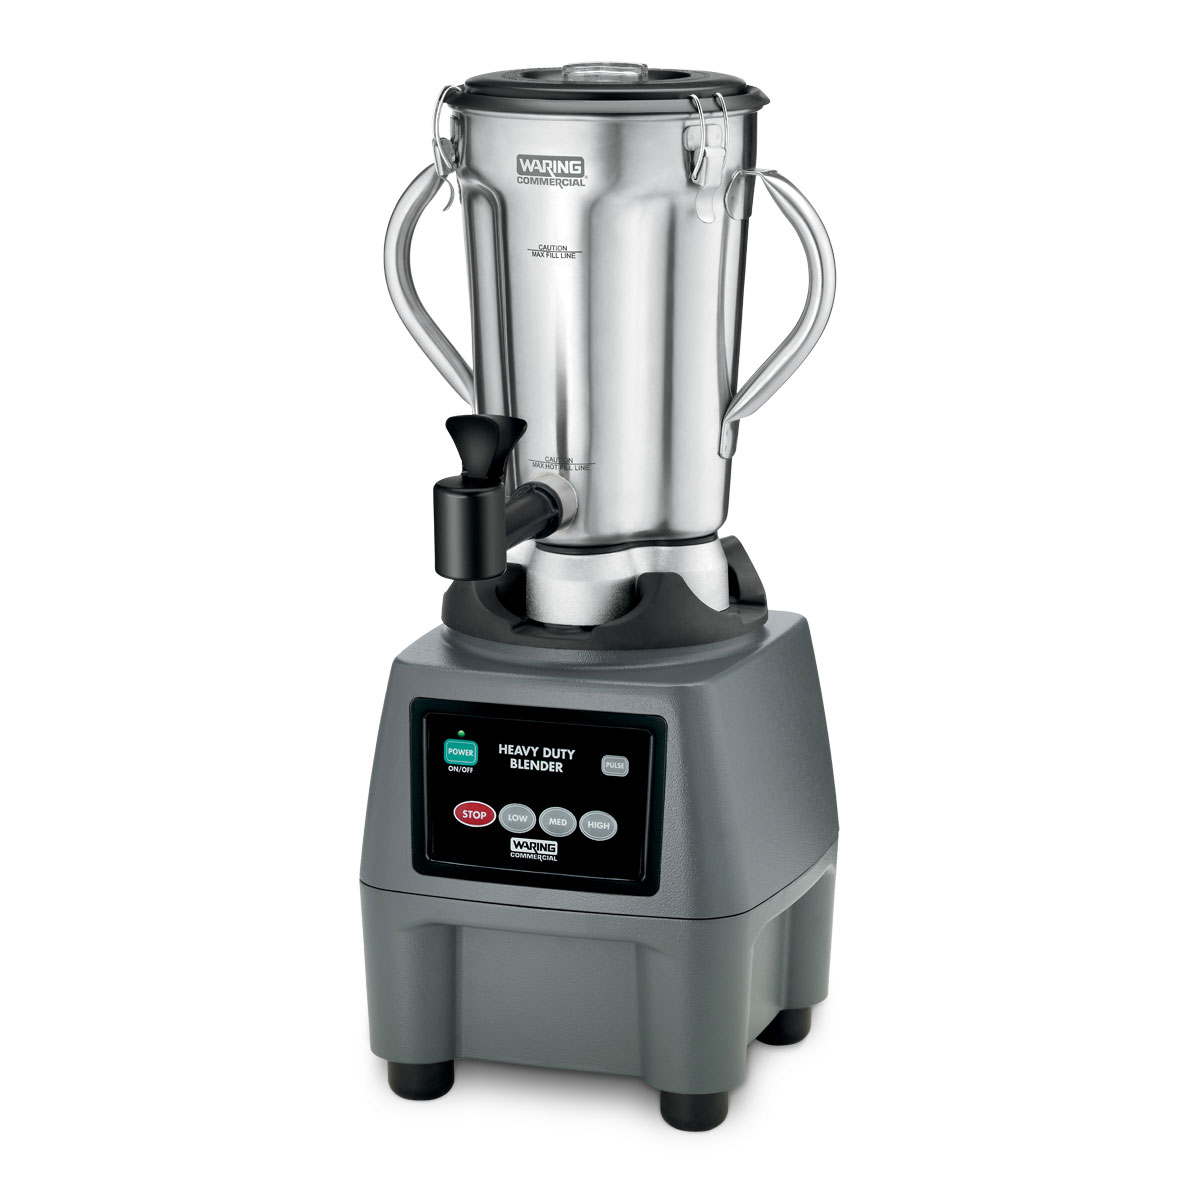 Waring CB15SF Countertop Food Blender w/ Metal Container